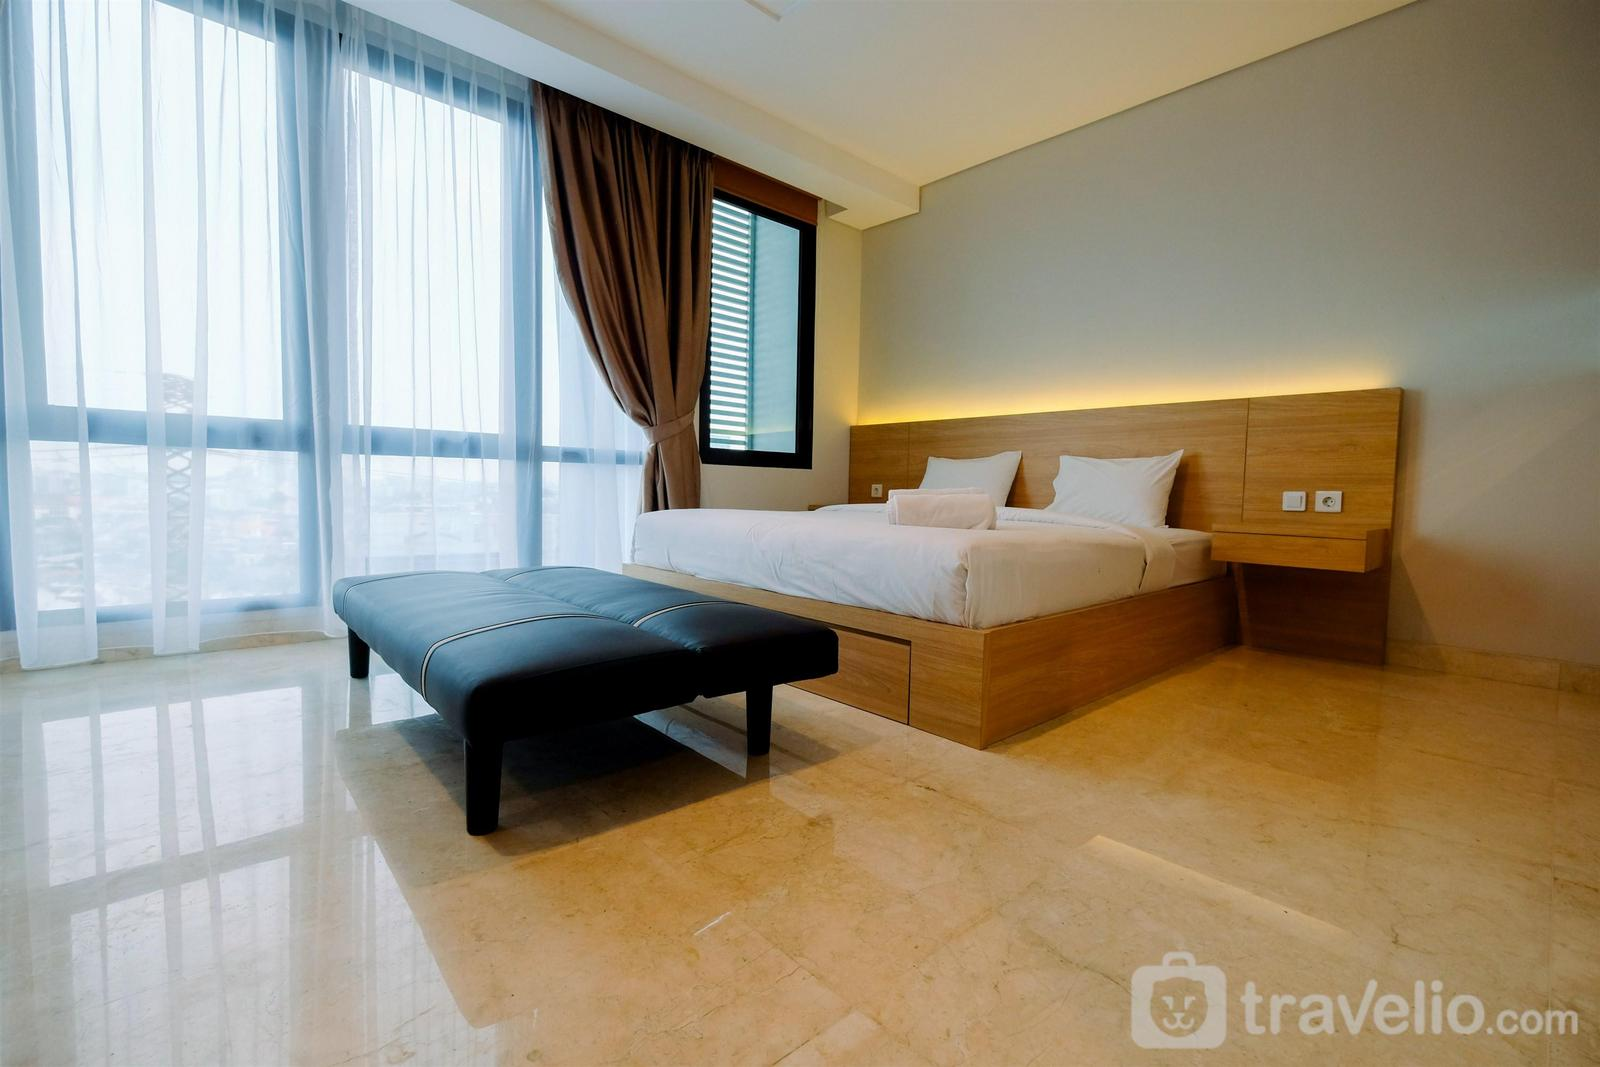 Capitol Suites - Spacious Studio Room at Capitol Suites Apartment By Travelio